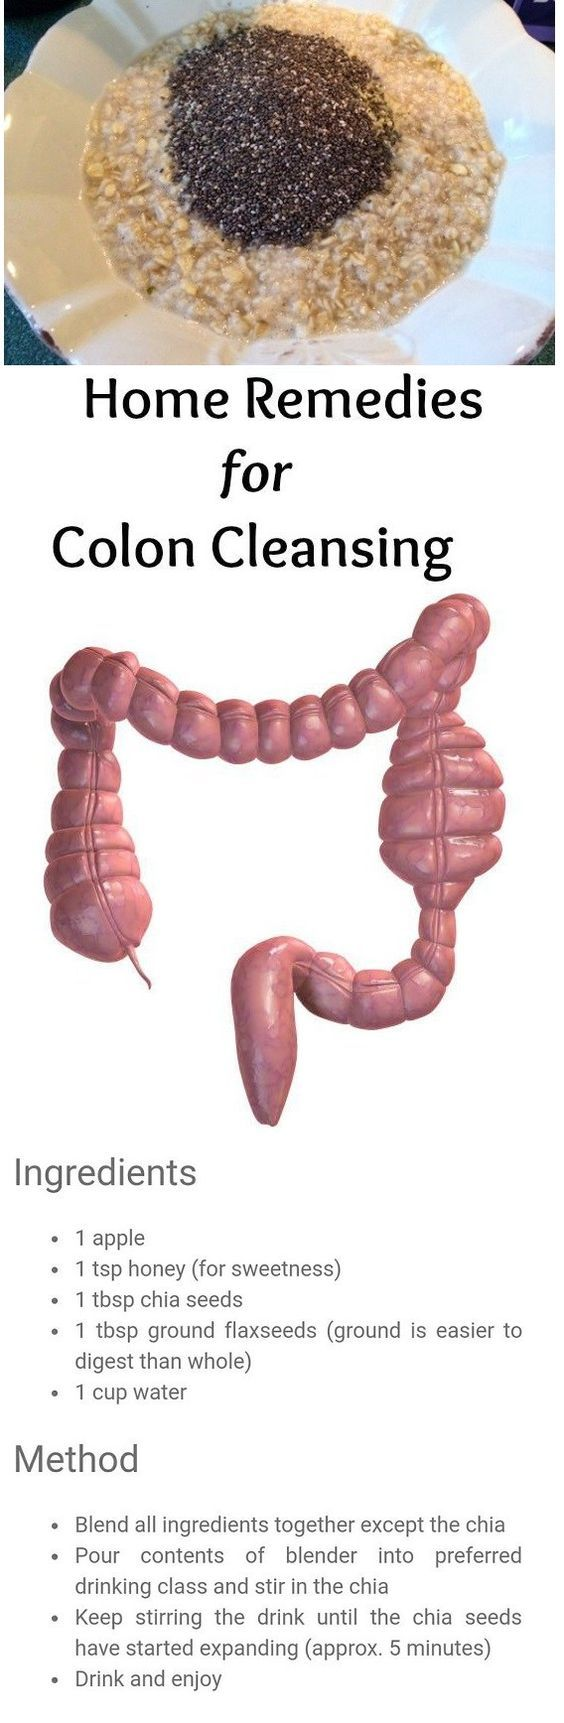 Homemade Colon Cleanse That Will Clean Your Colon of Toxic Waste: http://www.erodethefat.com/blog/fat-diminisher/